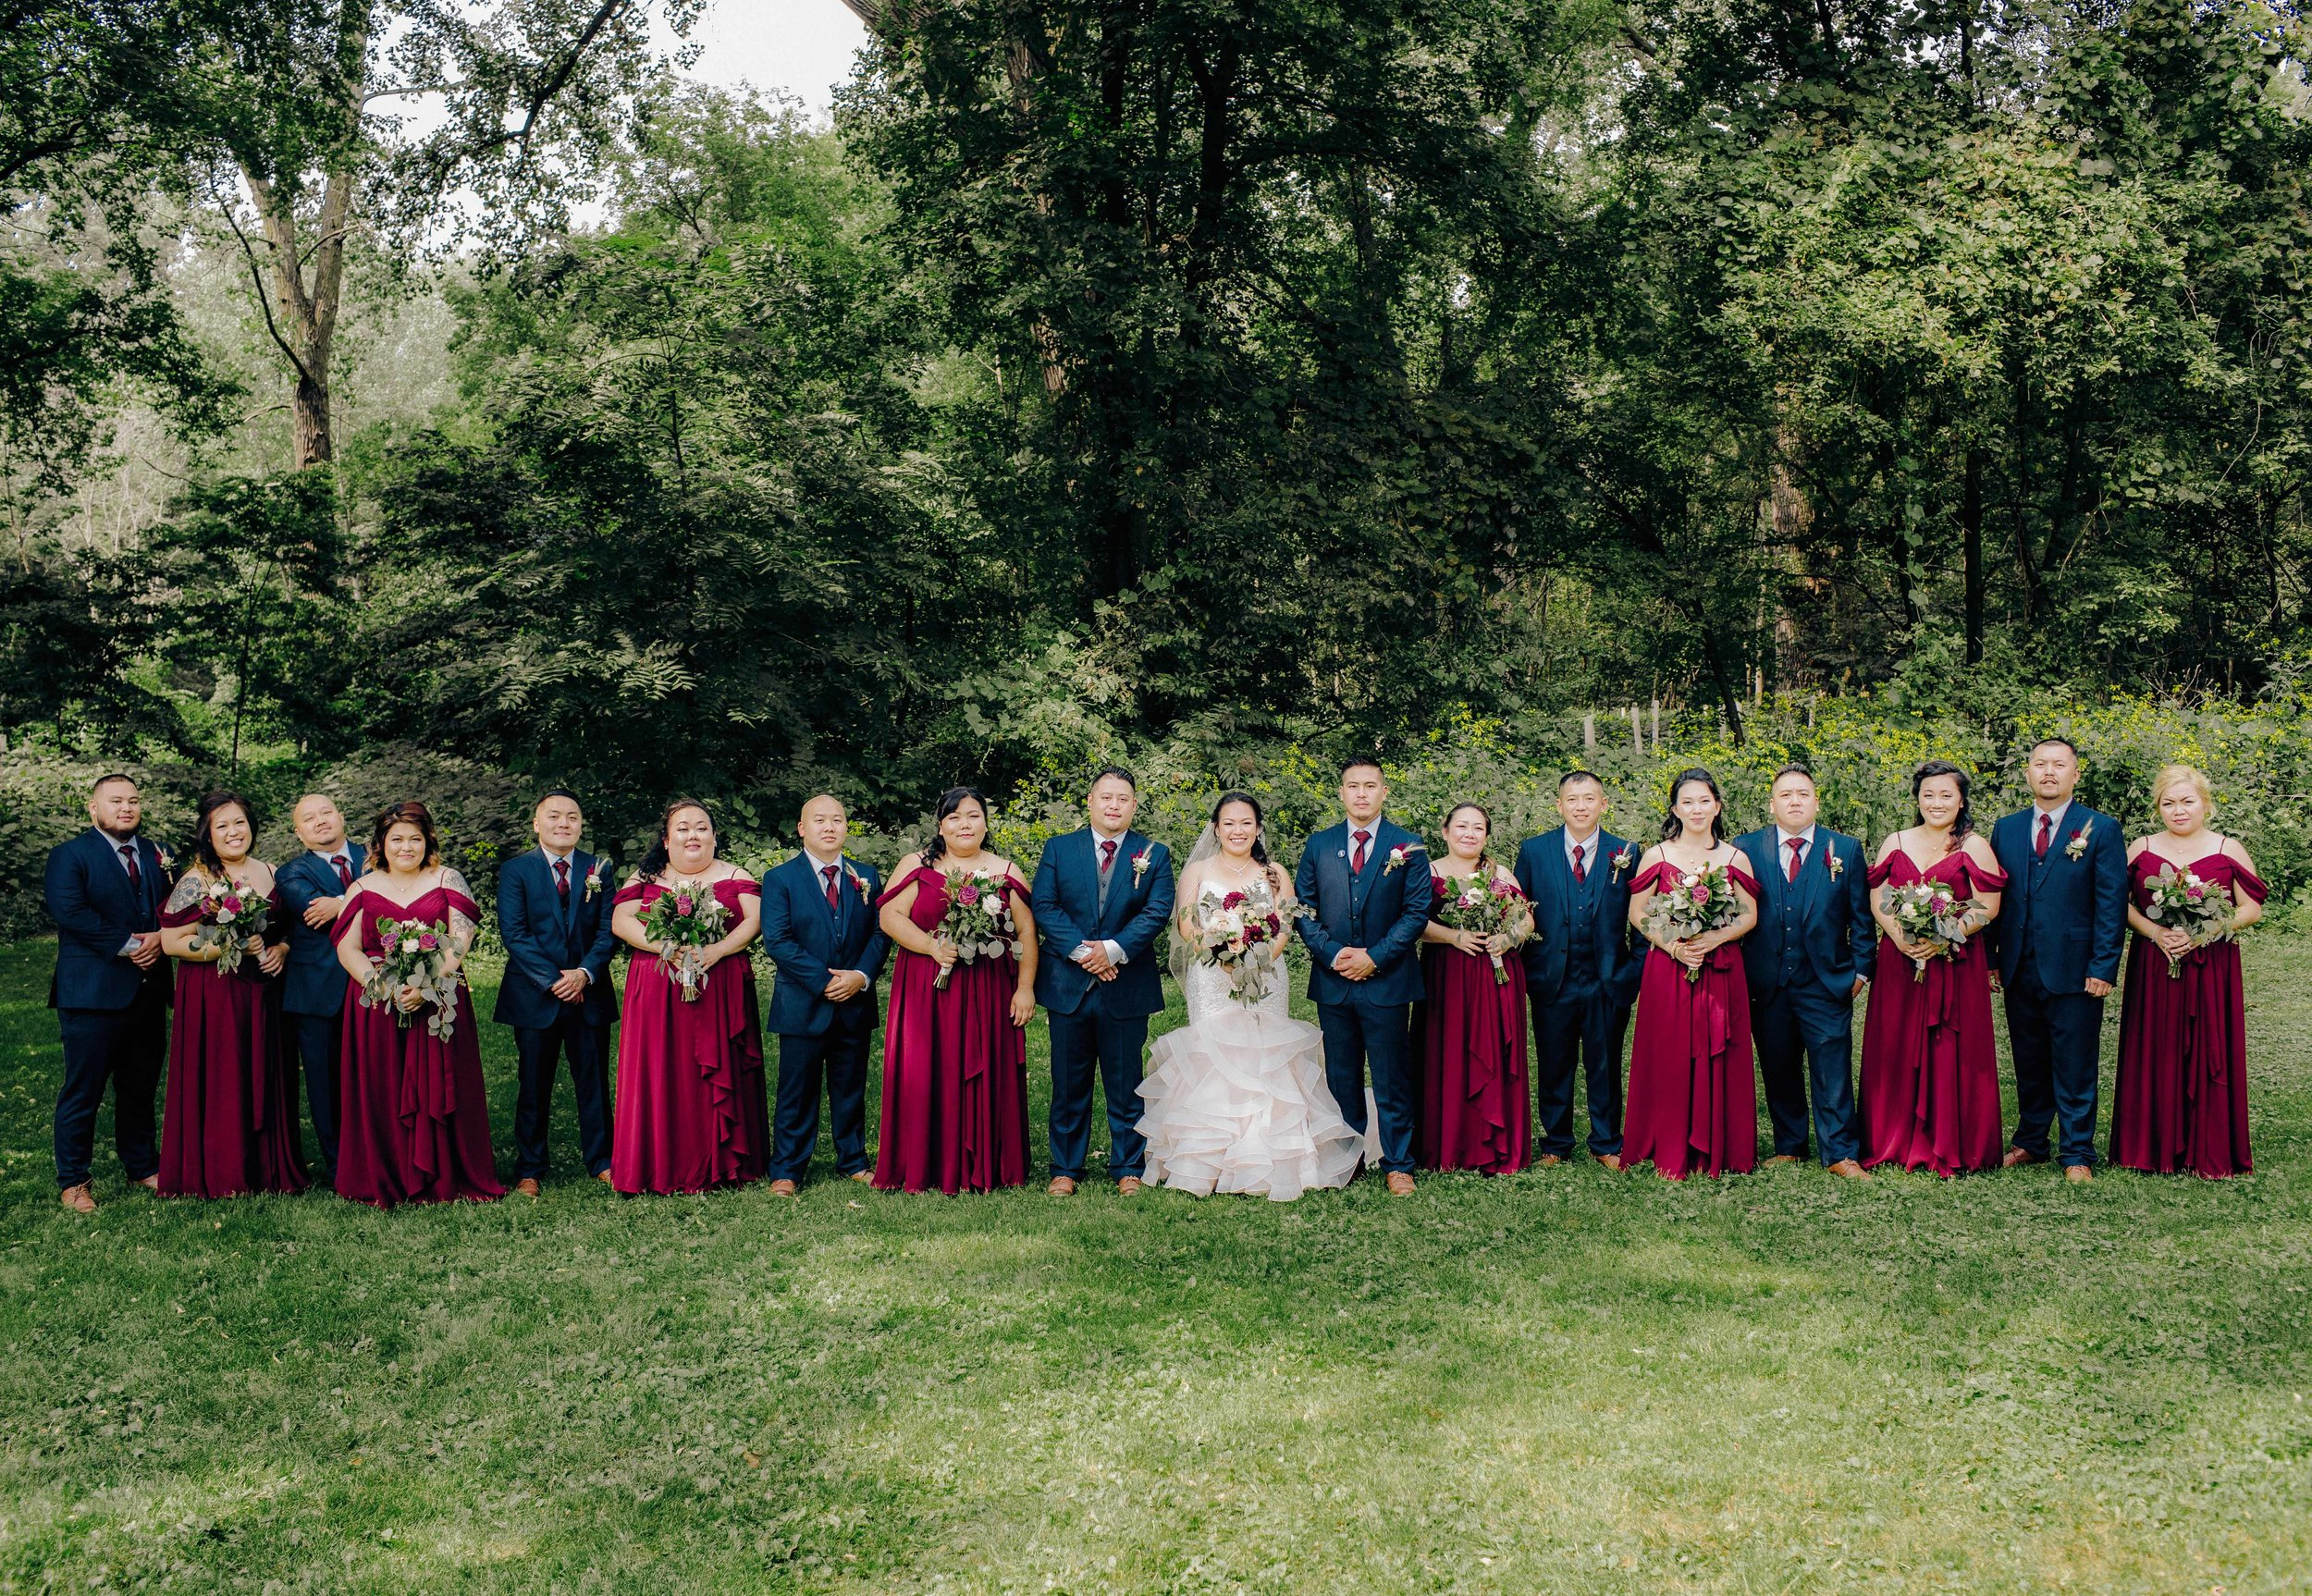 Becky + Kong, Part II, Bride, Groom, and Party-96.jpg